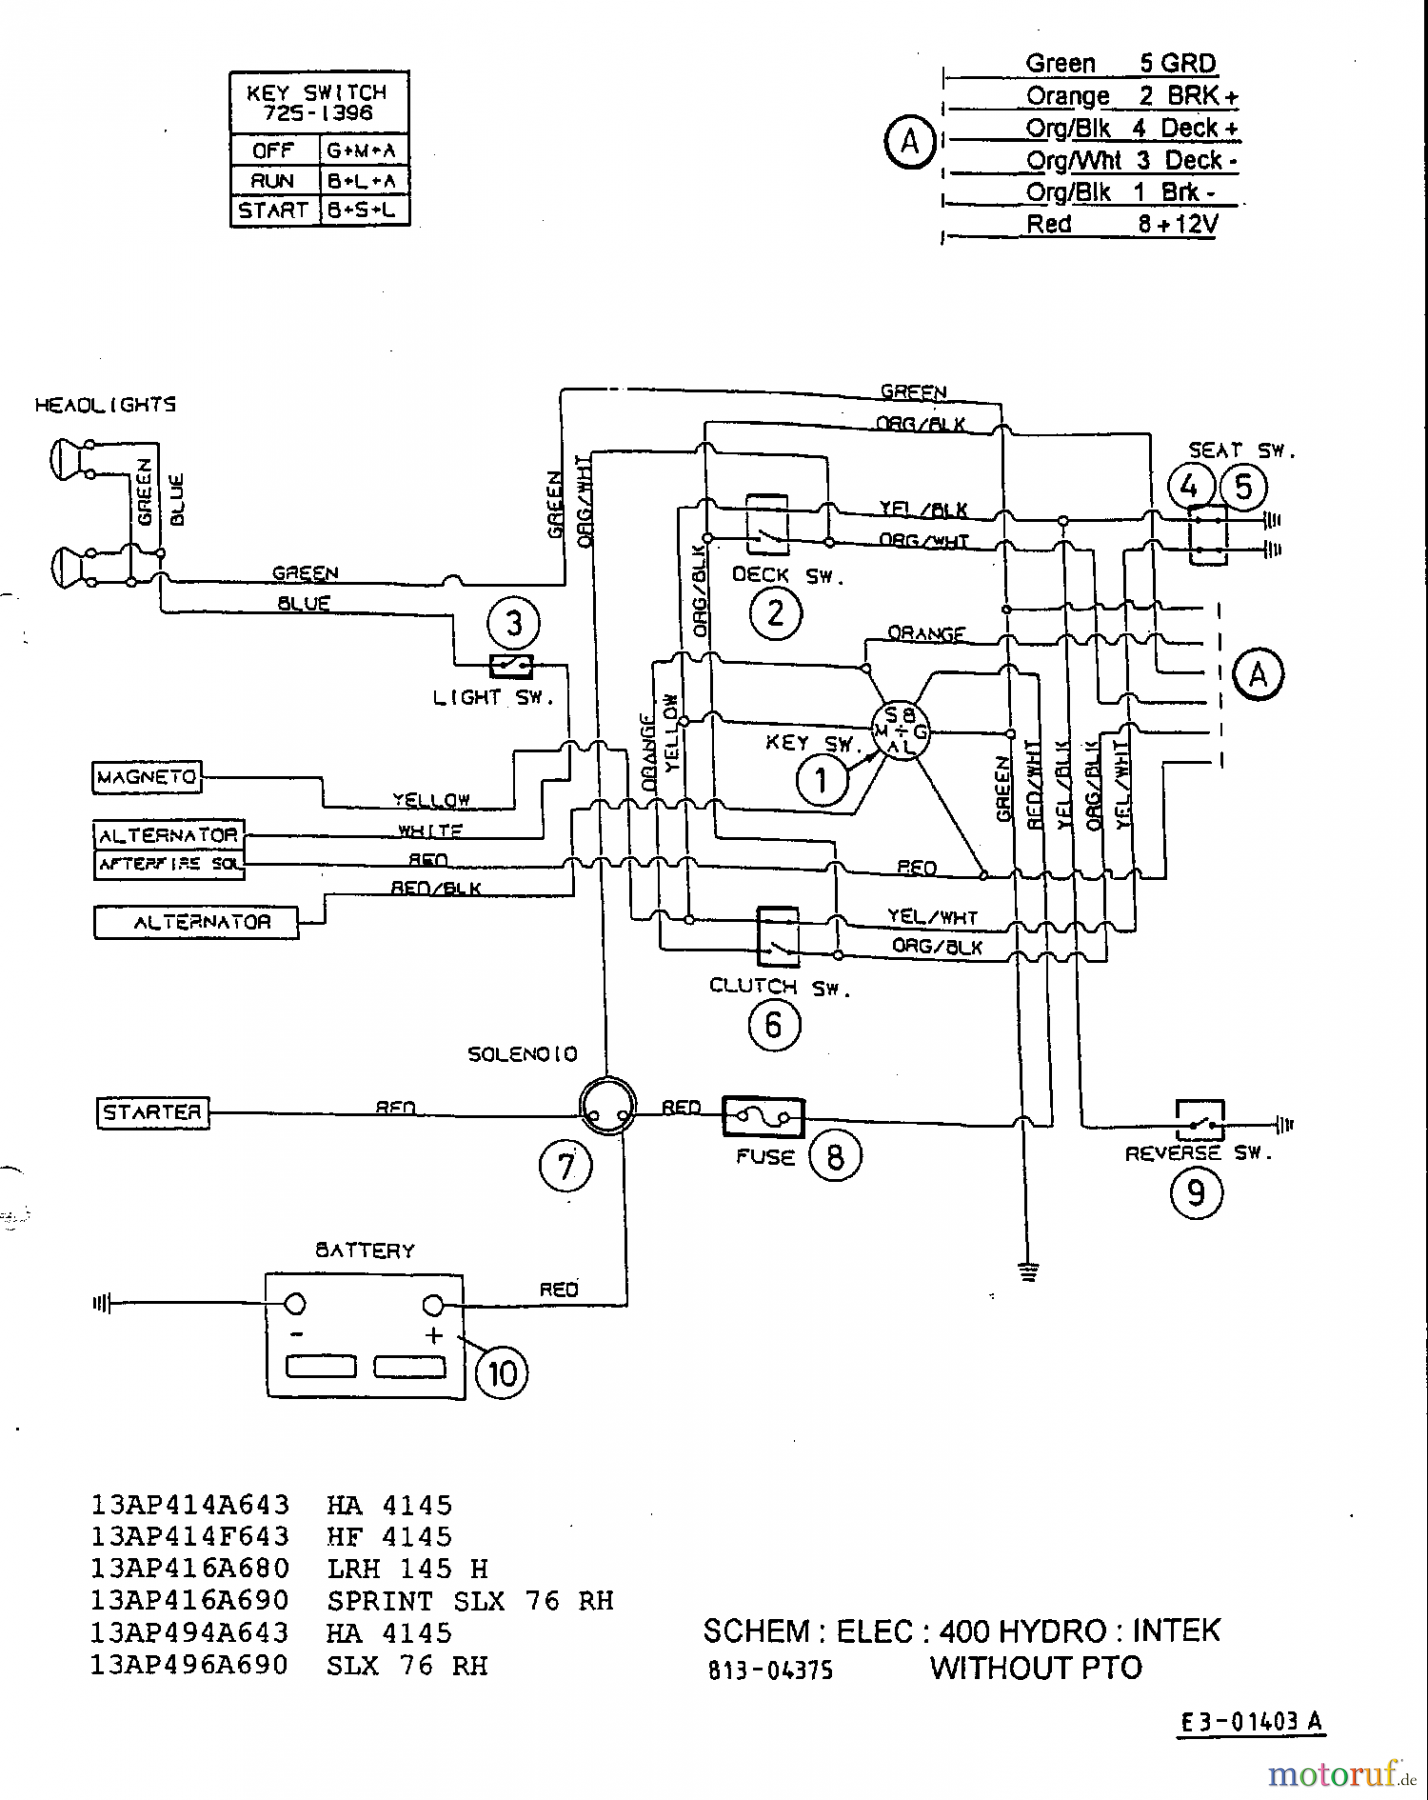 Daihatsu Yrv Fuse Box - All Diagram Schematics on